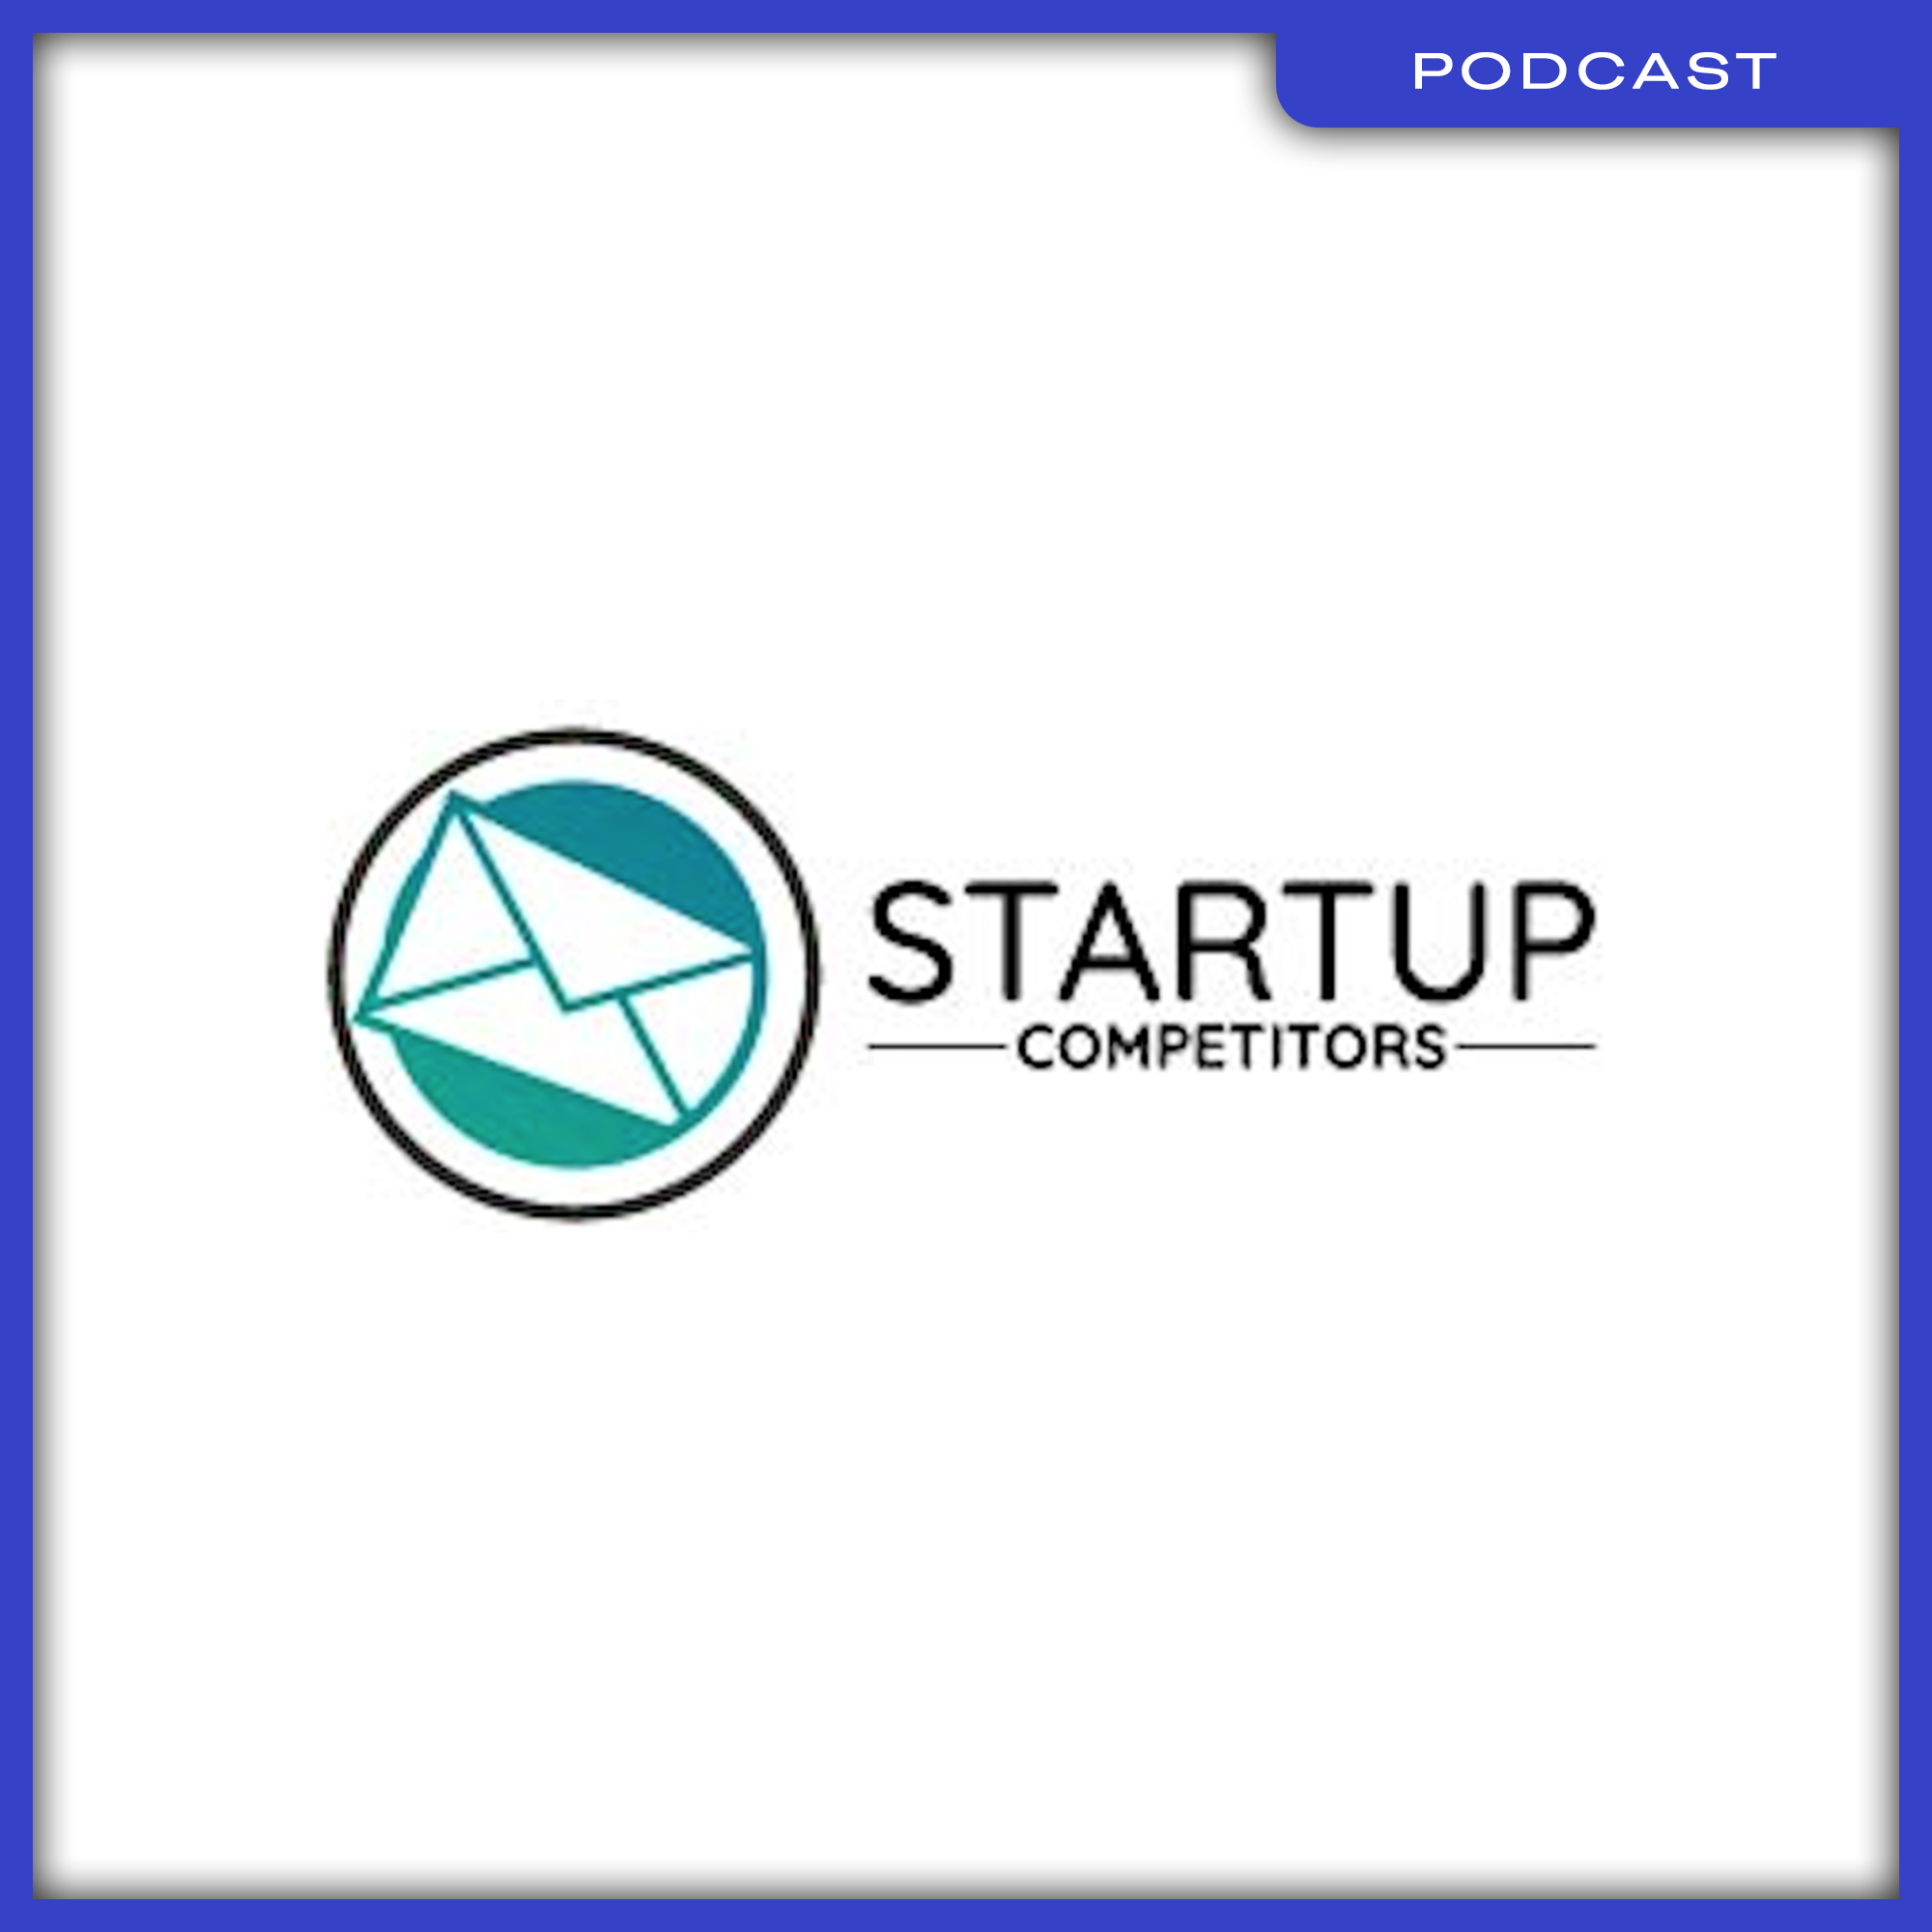 28_Podcast_STARTUP-COMPETITORS